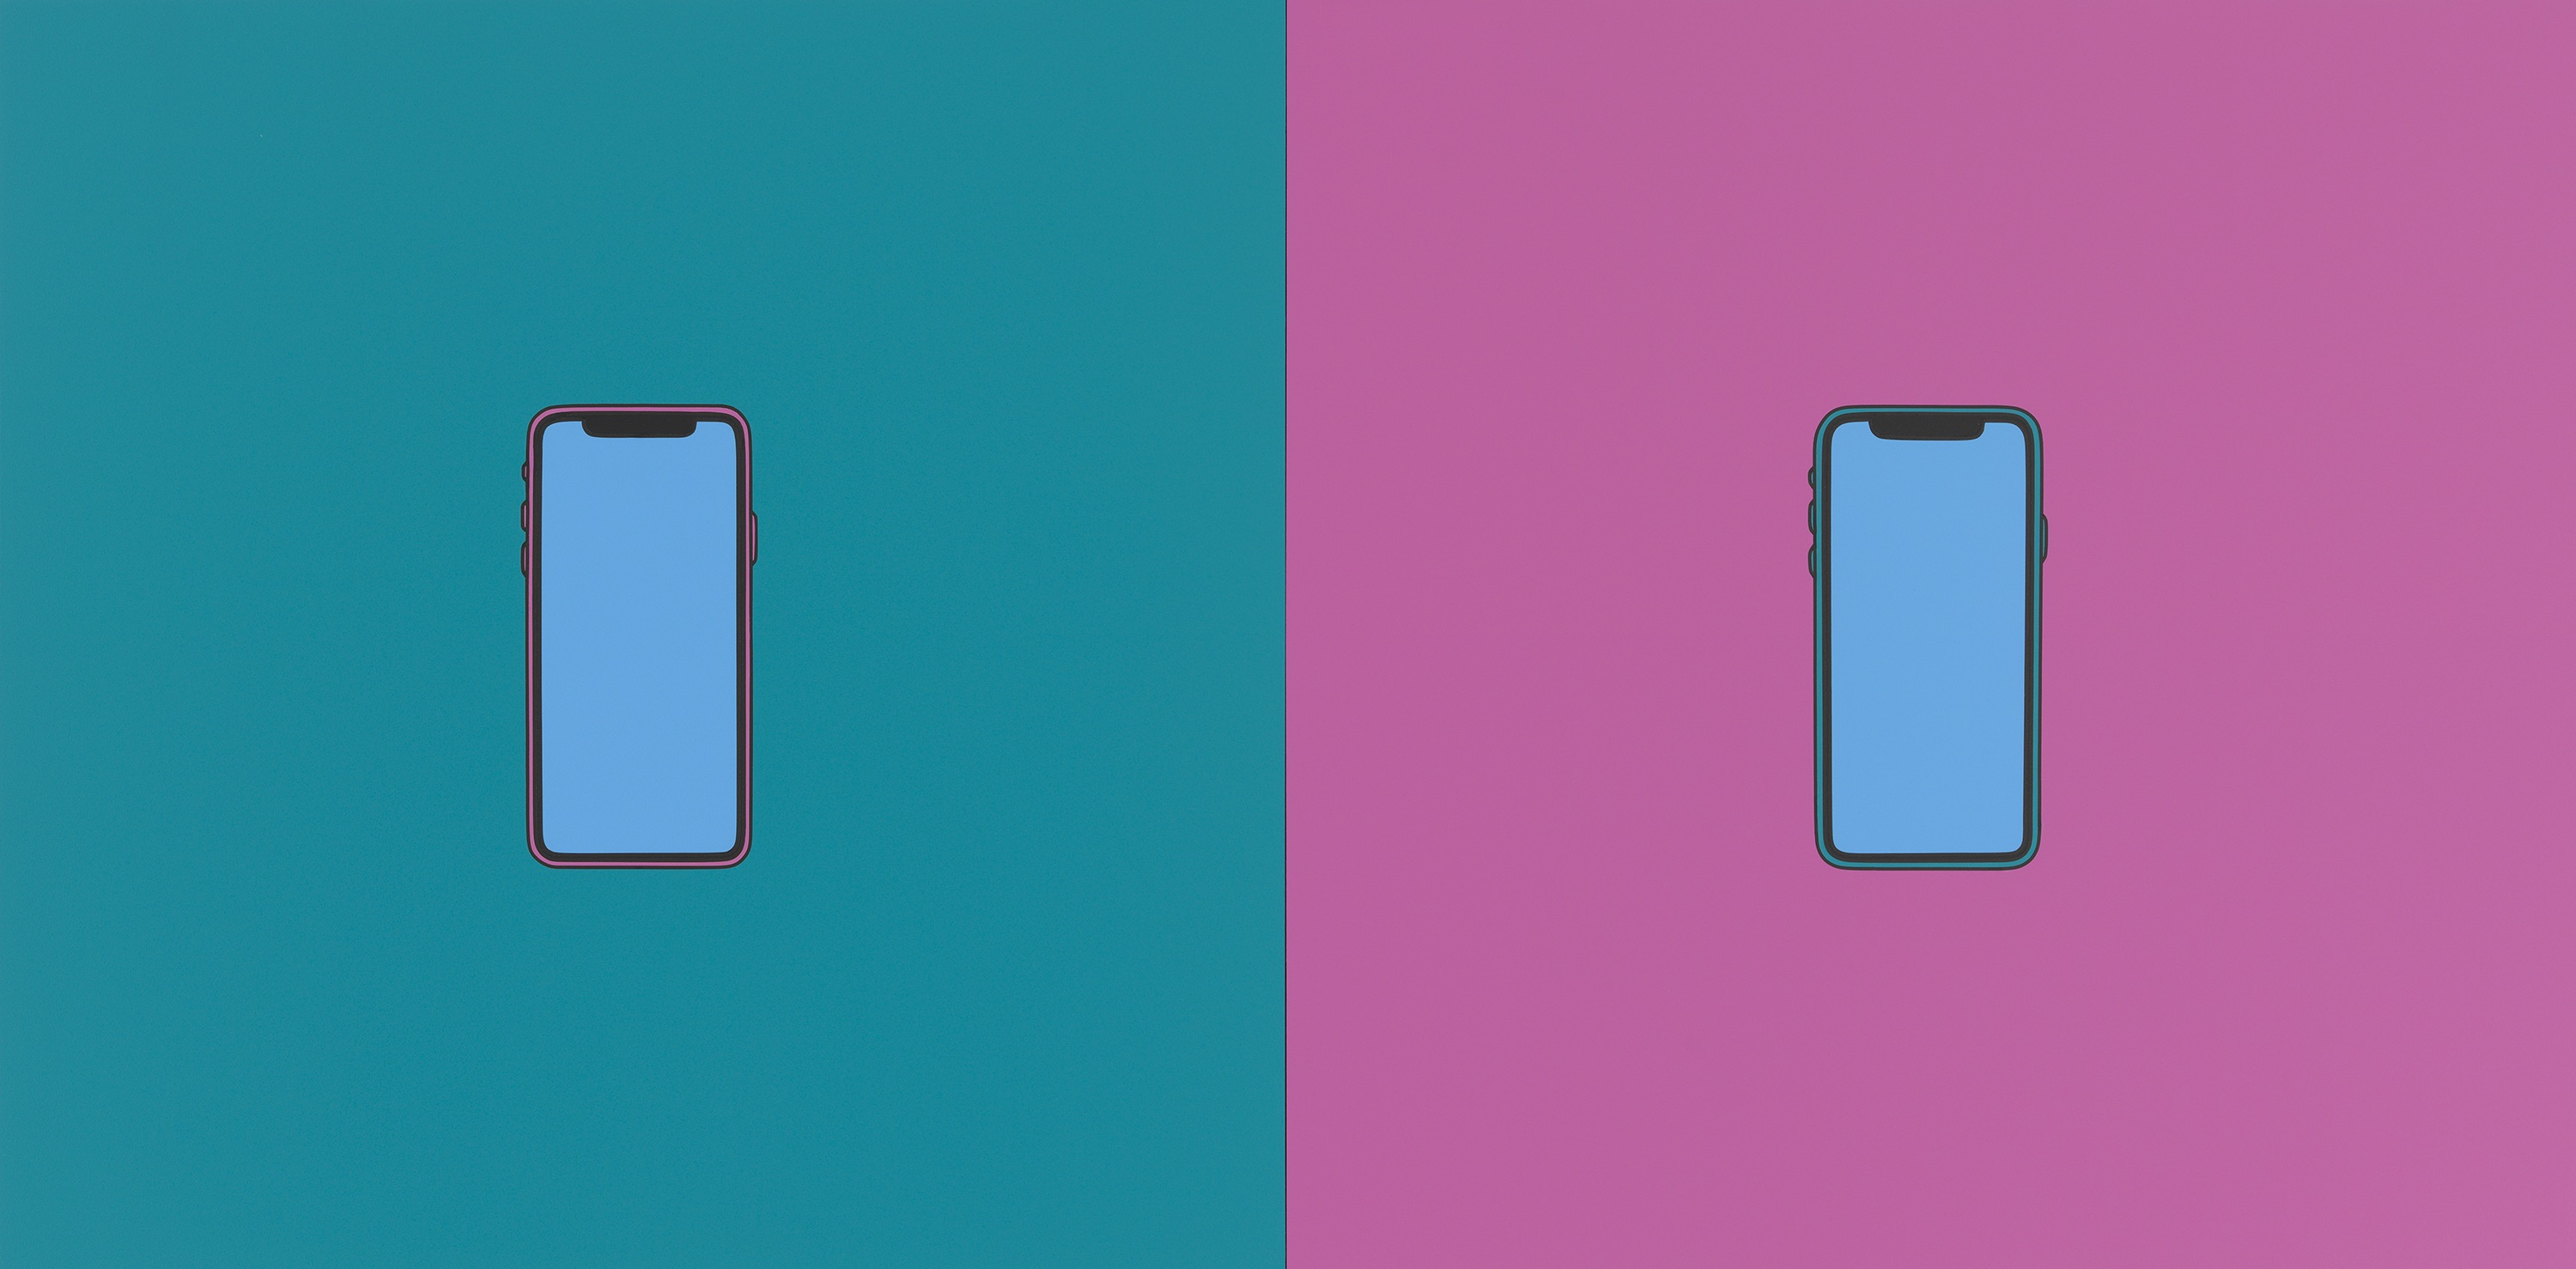 Double Take (iPhone), 2018, © Michael Craig-Martin Courtesy of the artist and Gagosian Photo: Mike Bruce